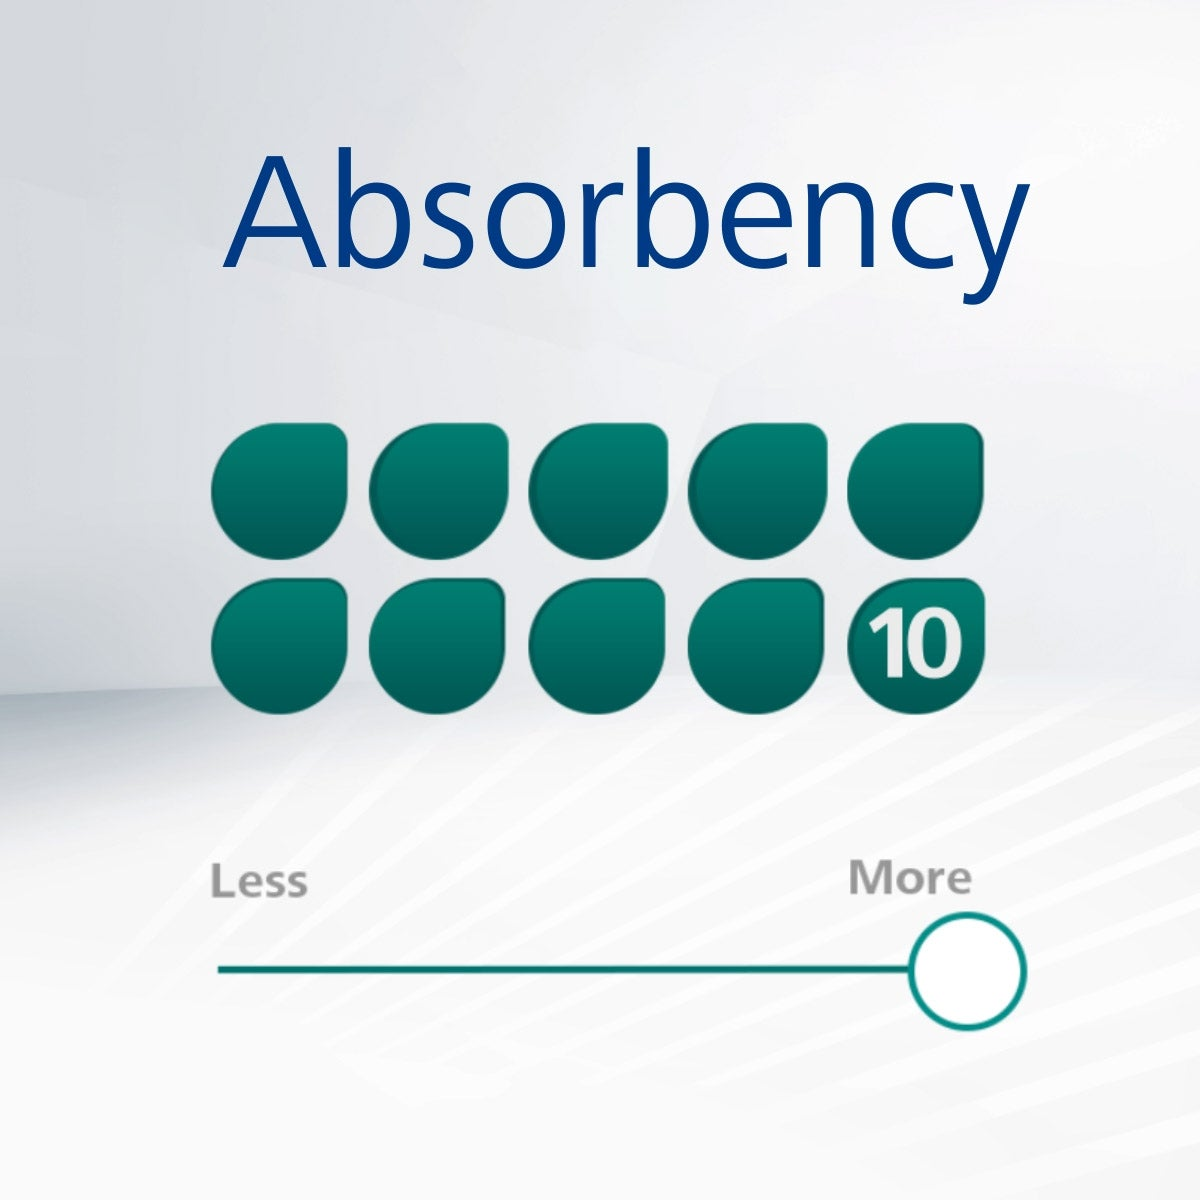 Right absorbency level 2